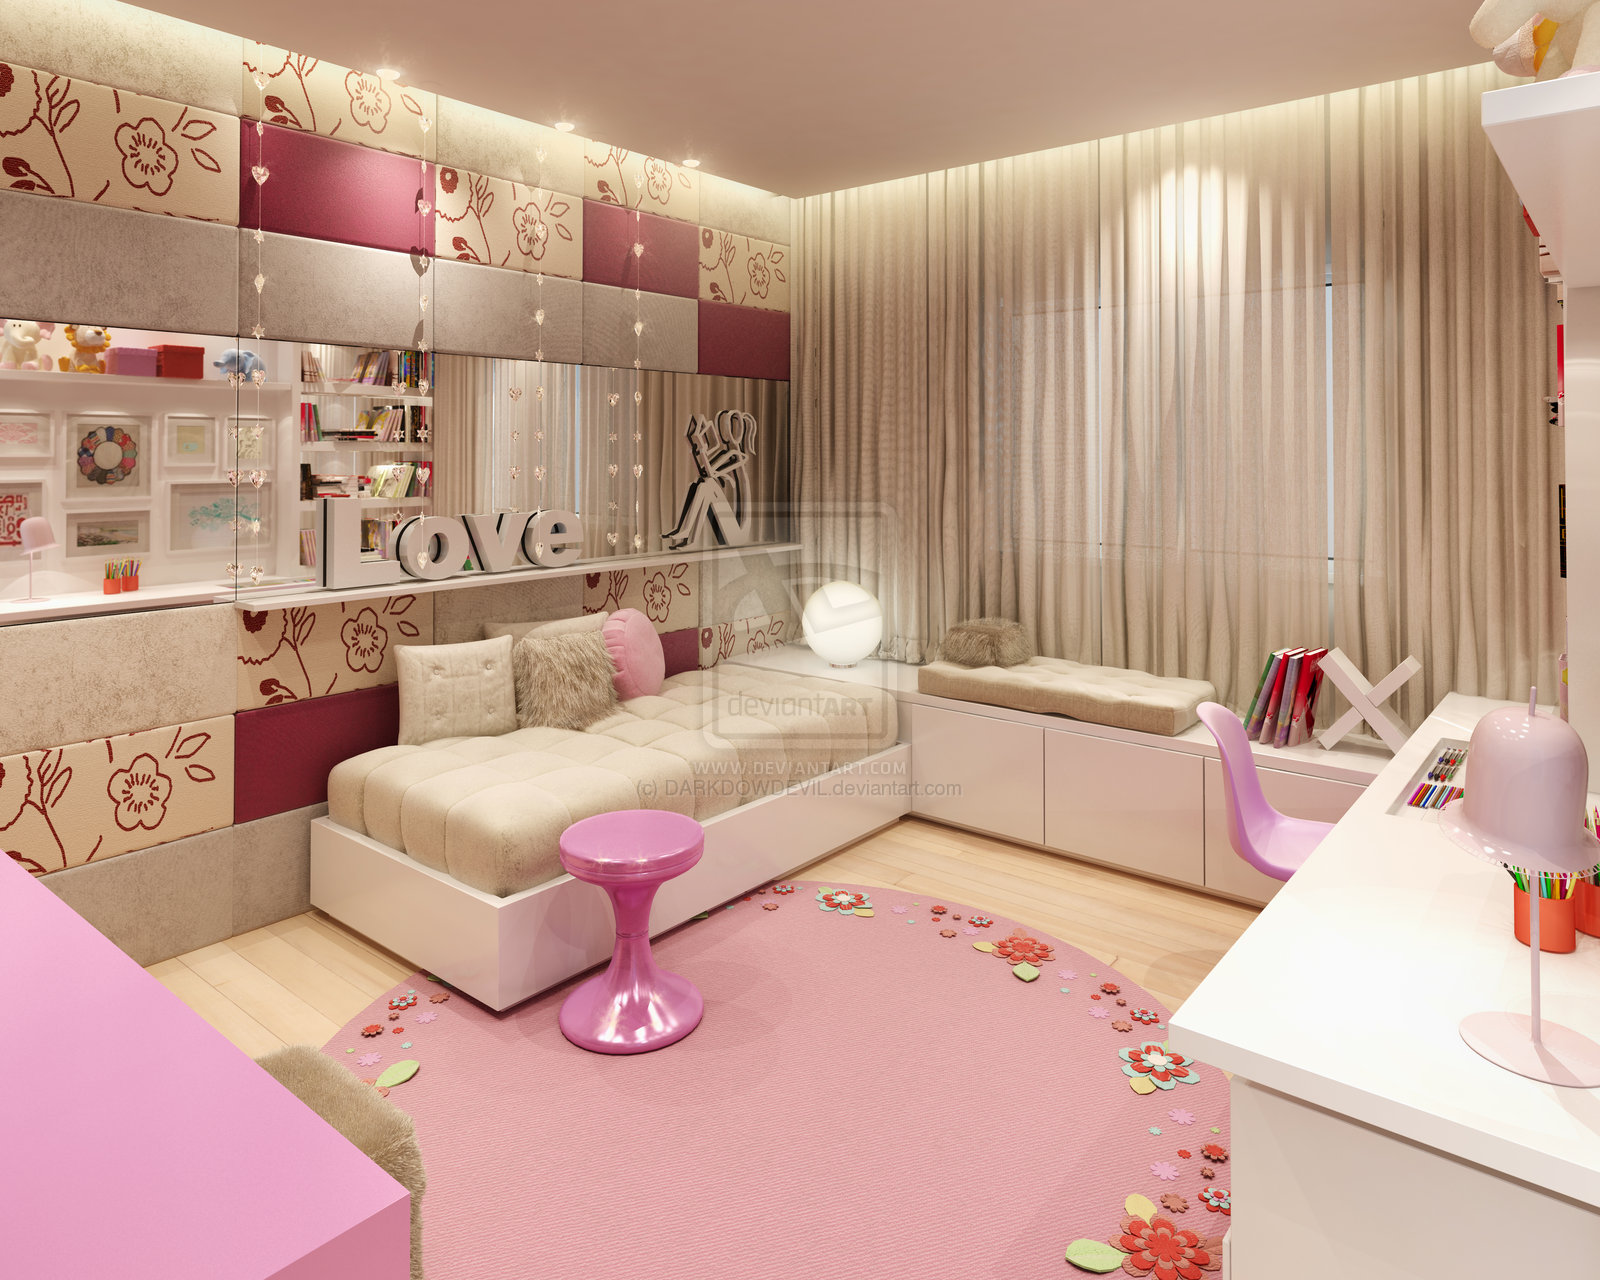 Home design interior monnie best girl bedrooms in the world for A girl room decoration